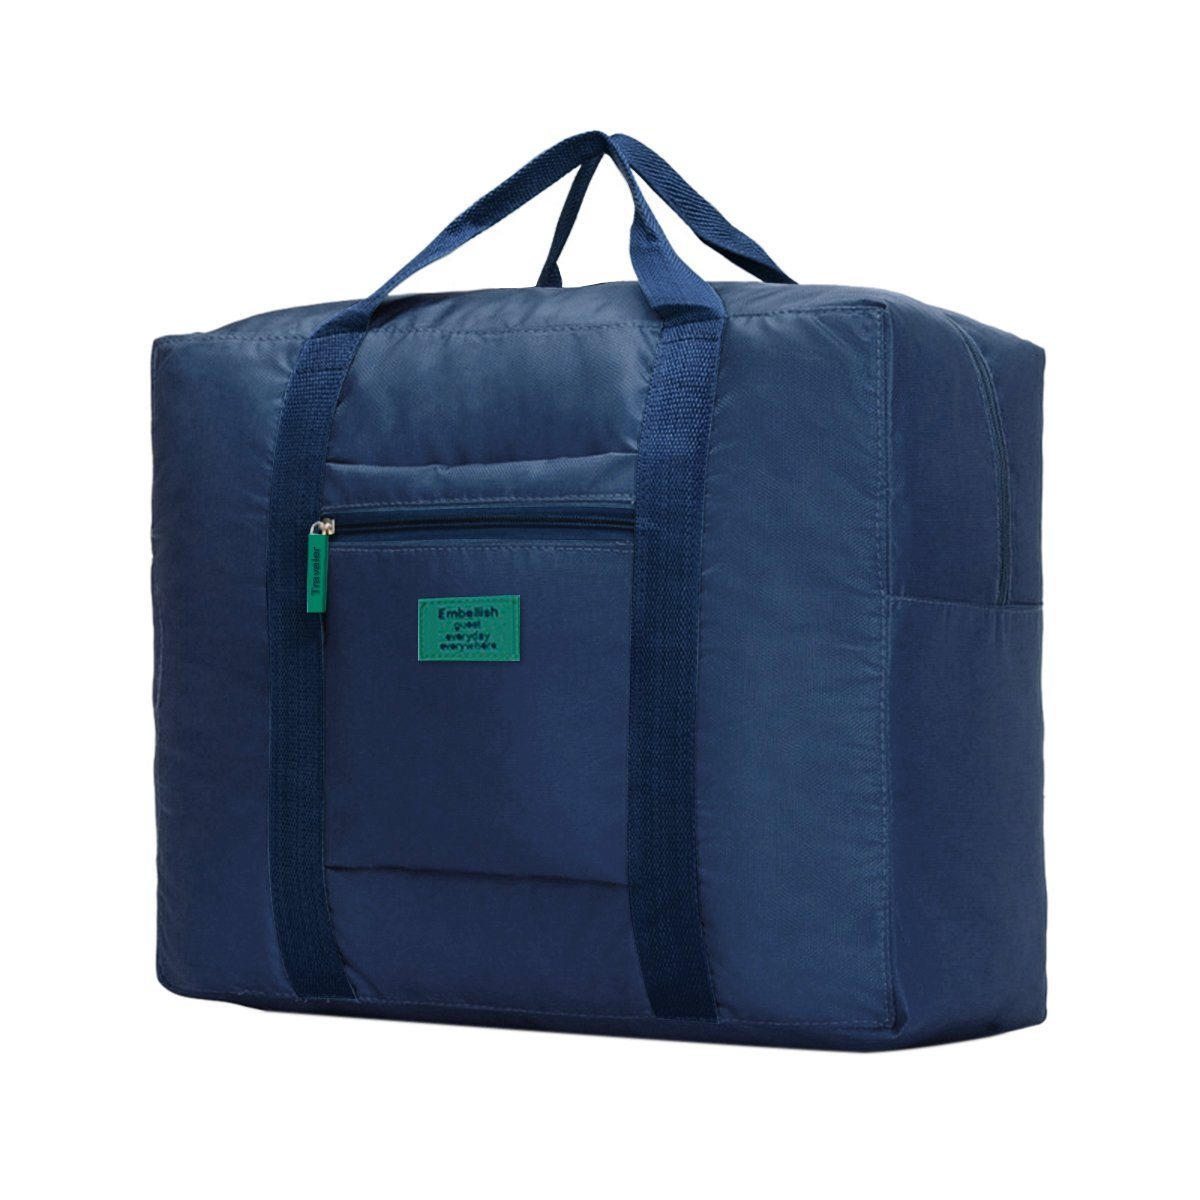 Packable Luggage Duffel Bag